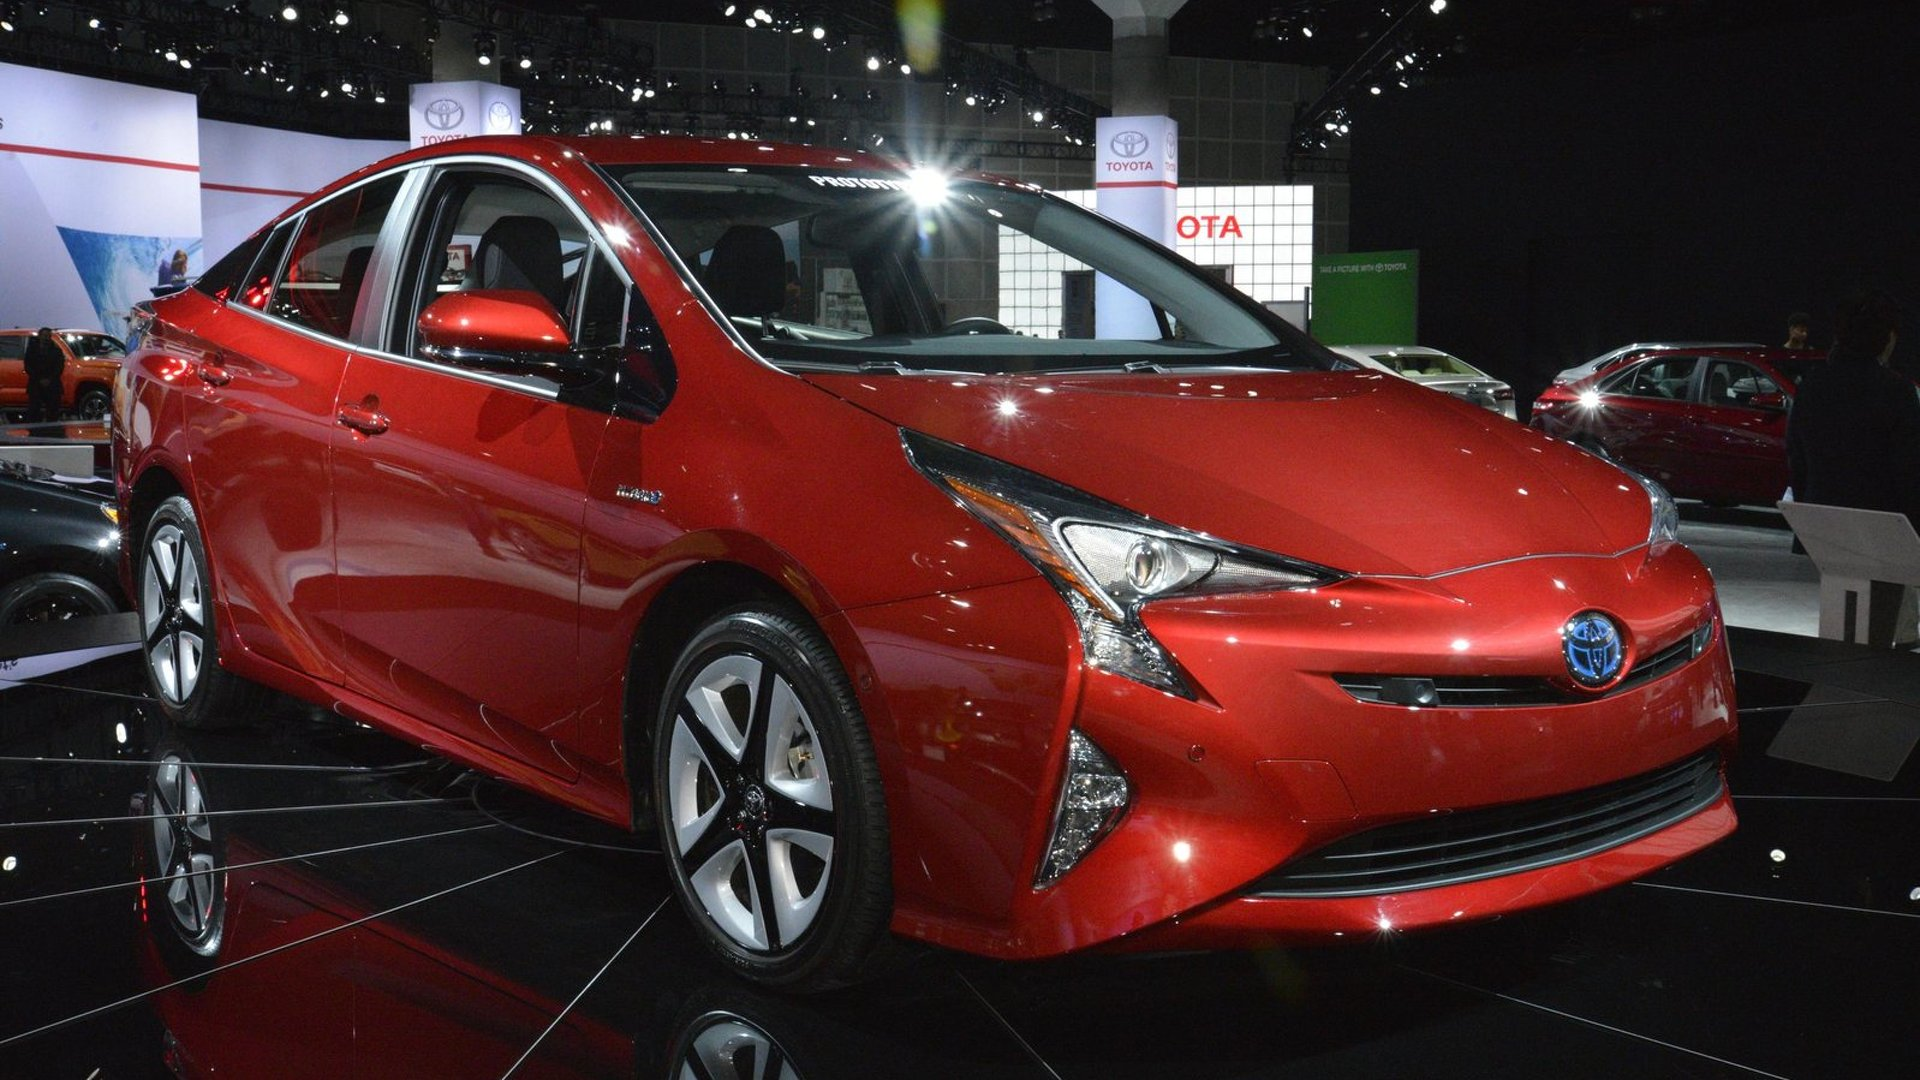 Https www motor1 com news 59688 toyota details us spec prius in mega gallery prices it from 24200 toyota green toyota prius prius toyota insignia